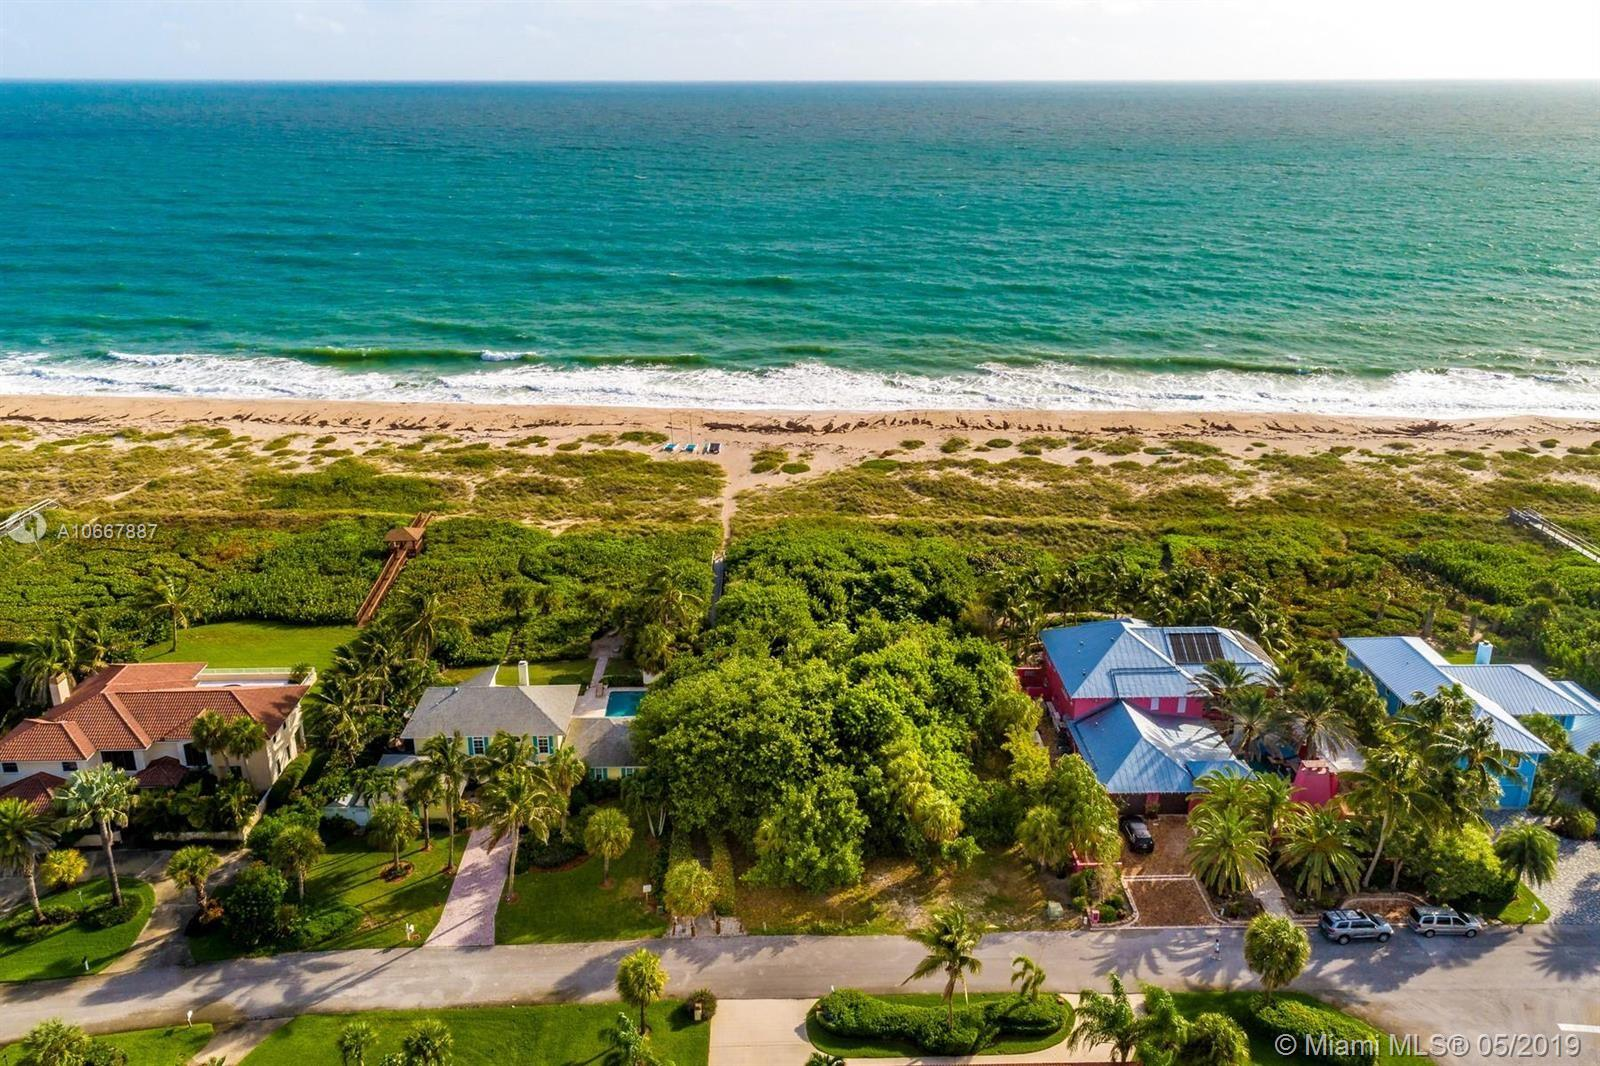 """Spectacular Atlantic Oceanfront Lush Vacant Lot located in the sought after private gated community of """"The Dunes.""""  This rare opportunity homesite is located amongst multi-million dollar properties on one of Vero Beach's best beach areas of South Beach.  A magnificent property that sets the stage for the perfect dream home where panoramic ocean views can be enjoyed by everyone.  Located near shopping, restaurants, schools, supermarkets, houses of worship, gallery's and much more!!!"""